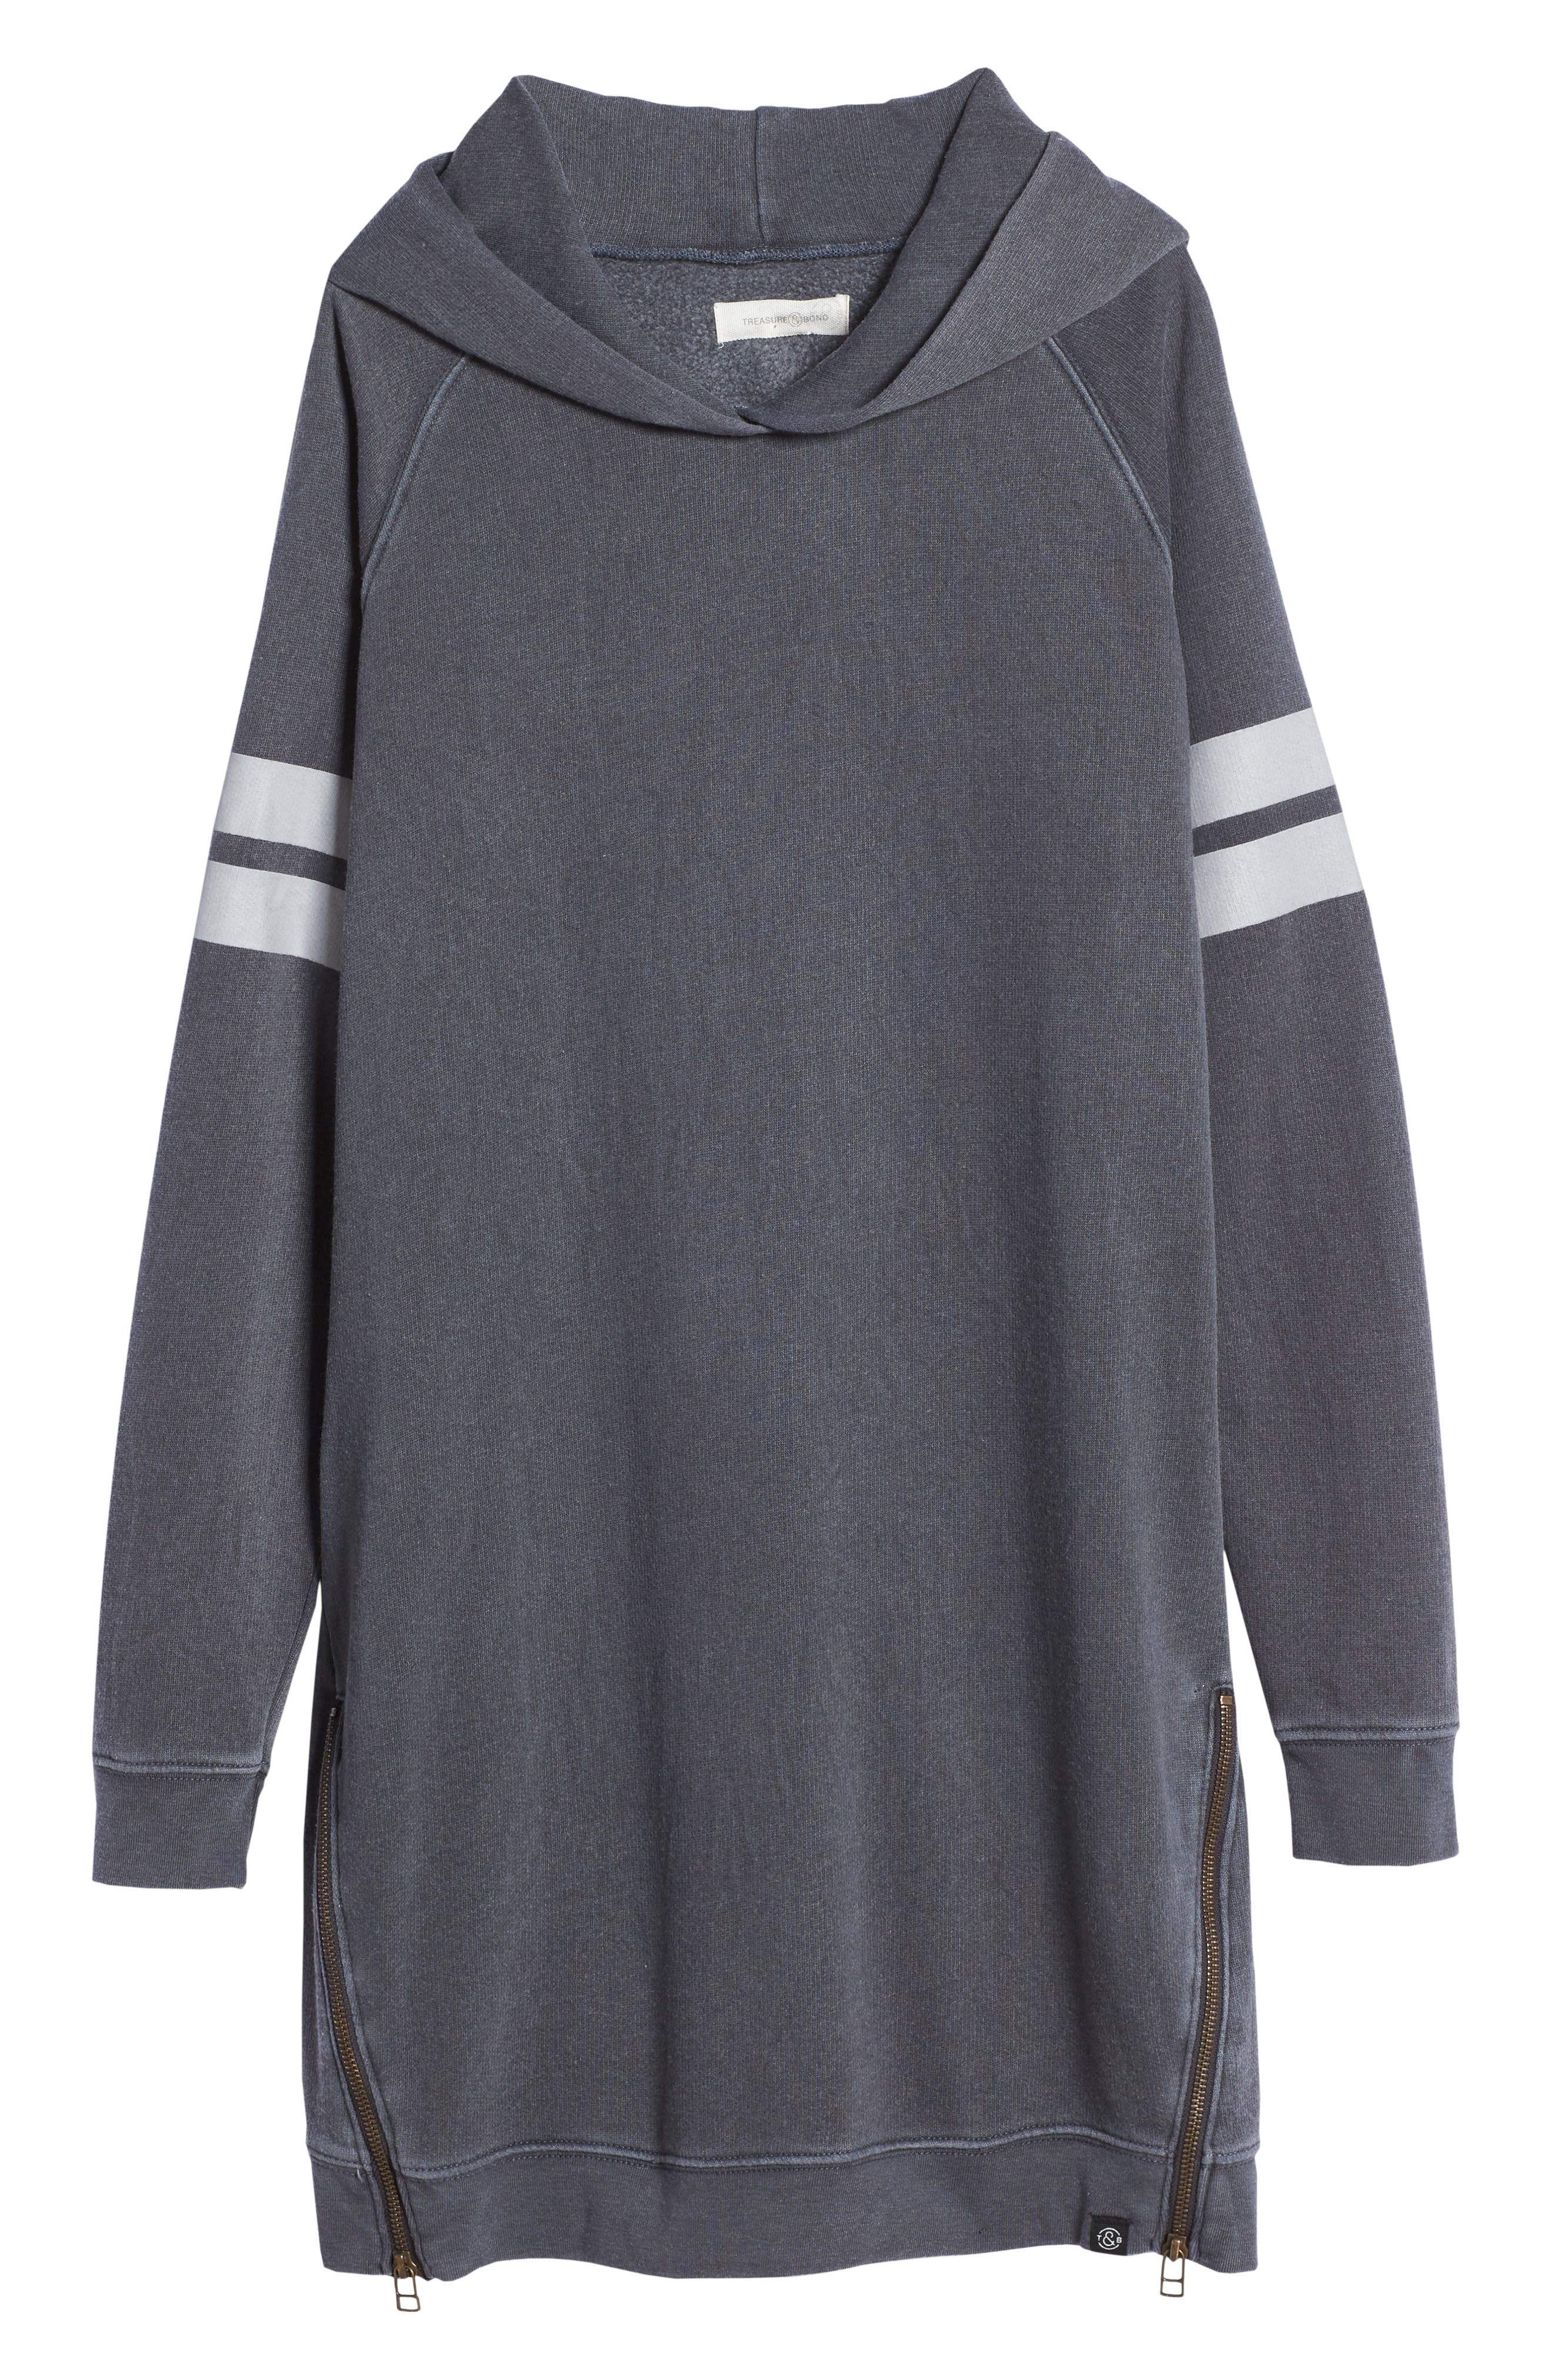 Treasure & Bond Hooded Fleece Sweatshirt Dress (Big Girls)